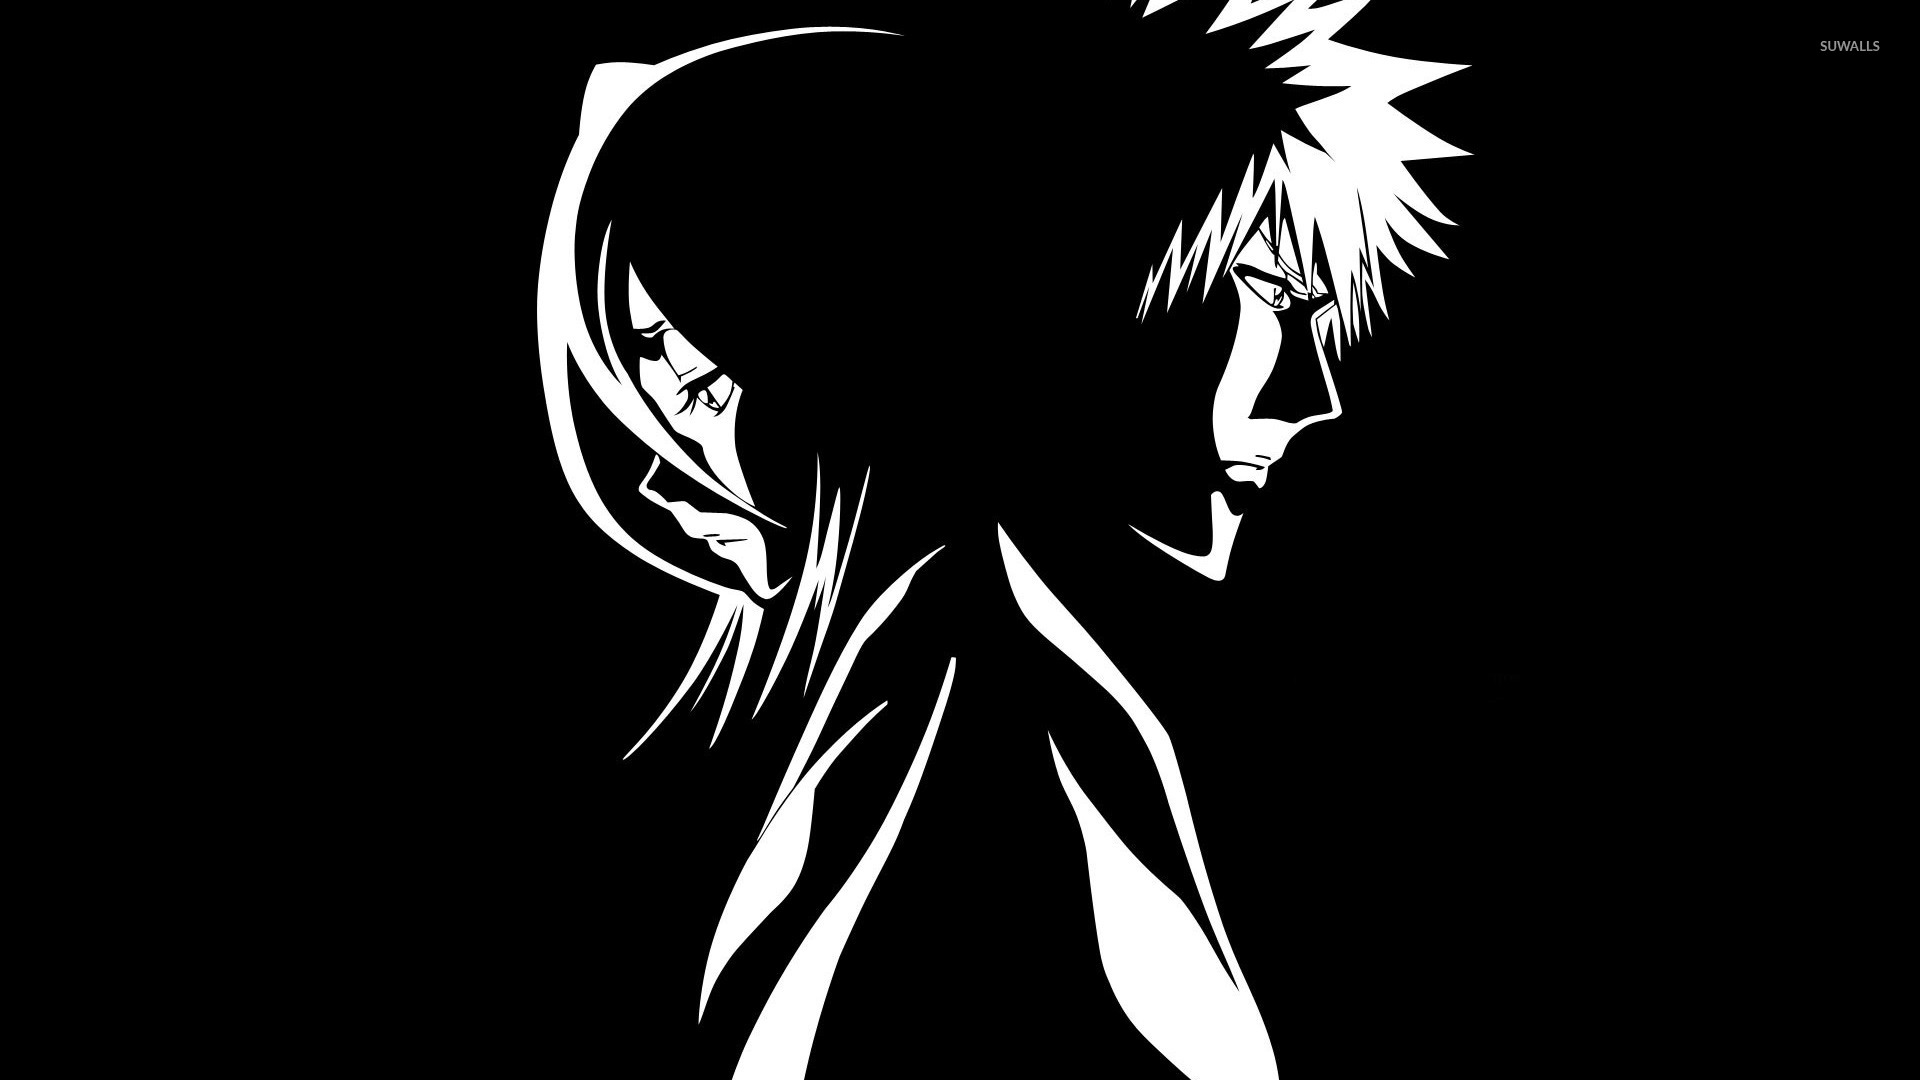 rukia and ichigo bleach wallpaper anime wallpapers